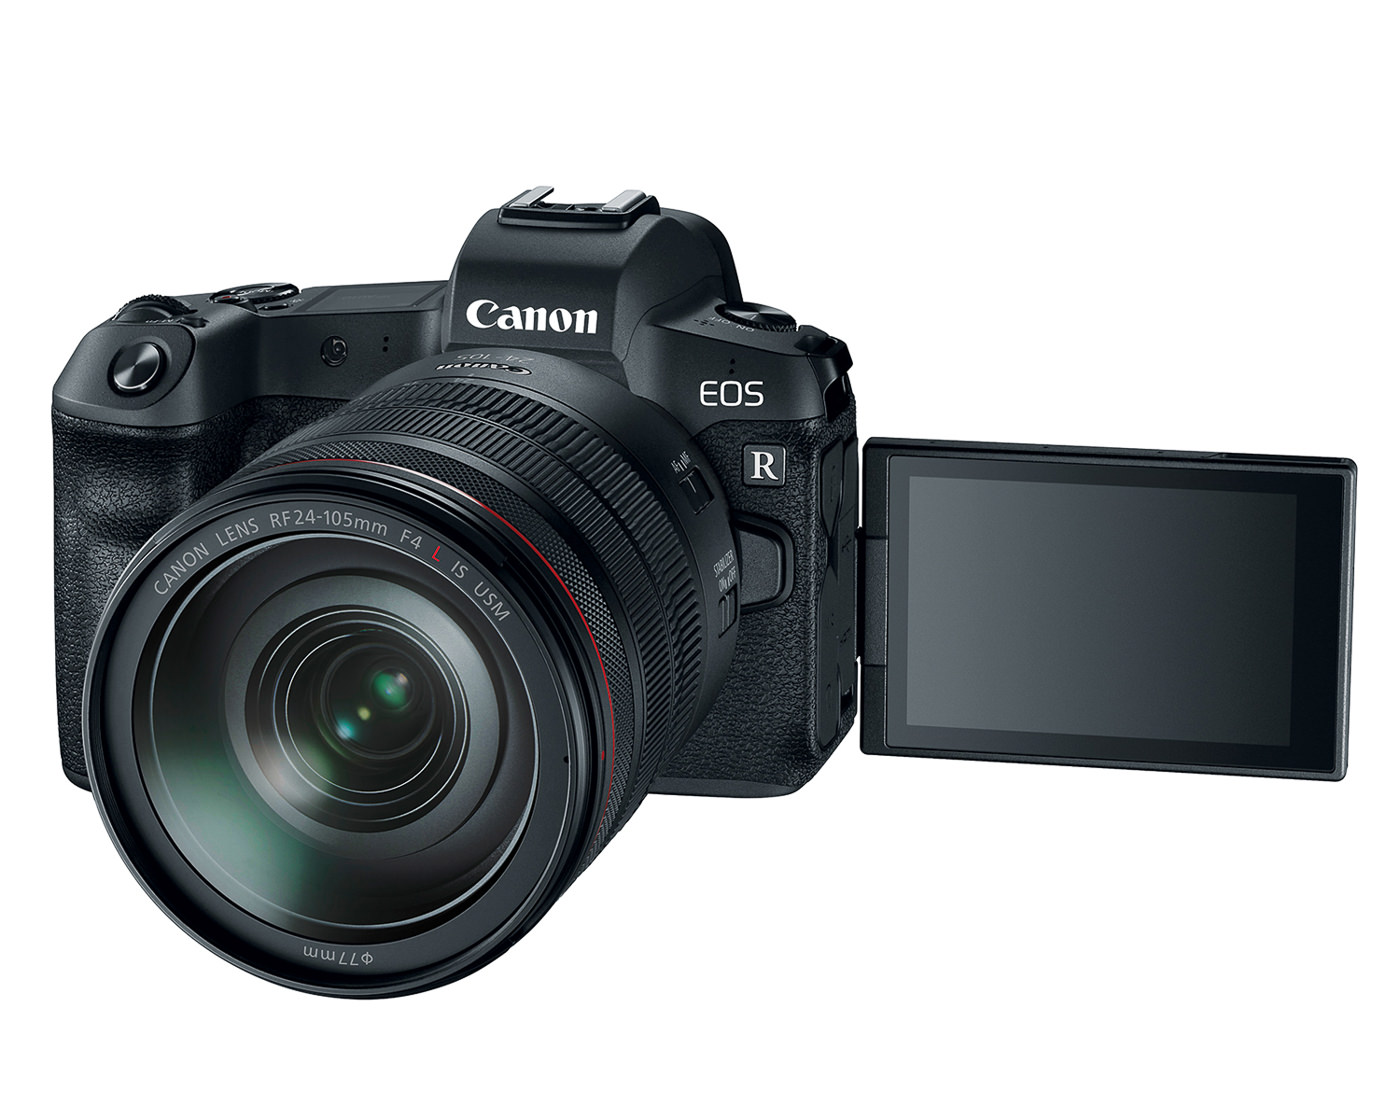 Canon EOS R front view with 24-105 f4 lens and rear screen flipped out